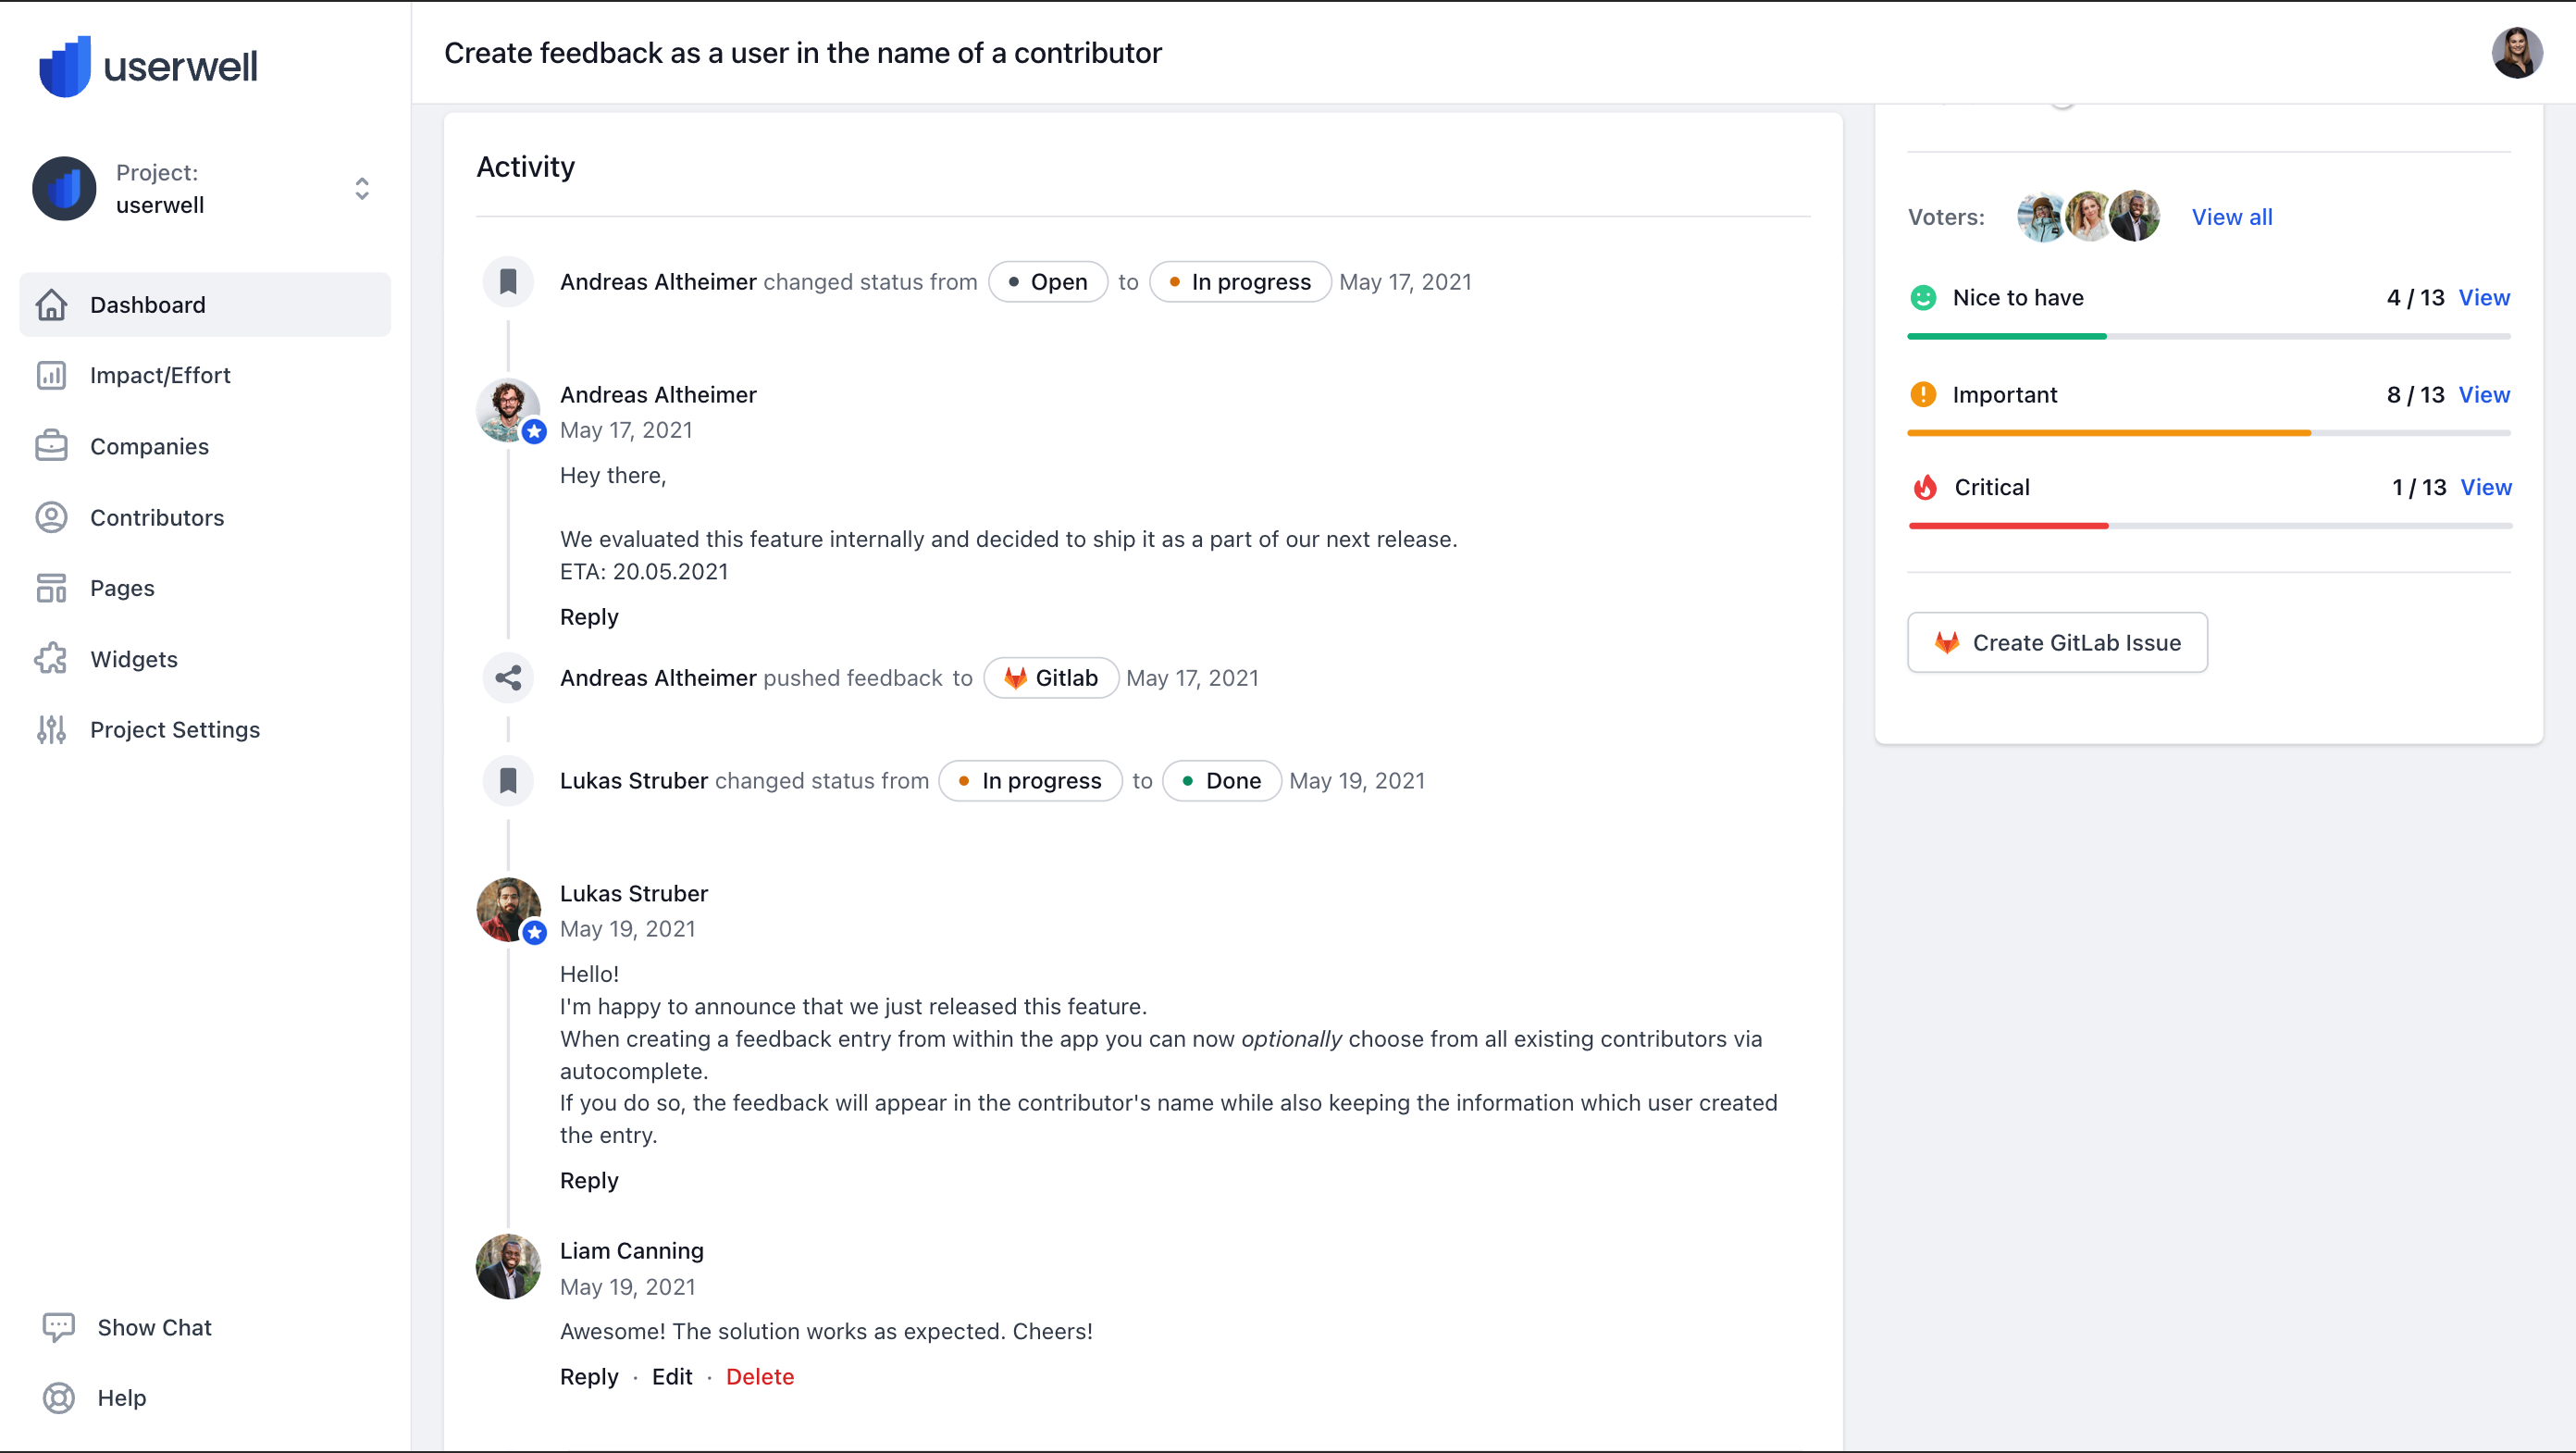 Engage with your customers and let them know that their feedback is valuable or update them on feature releases.